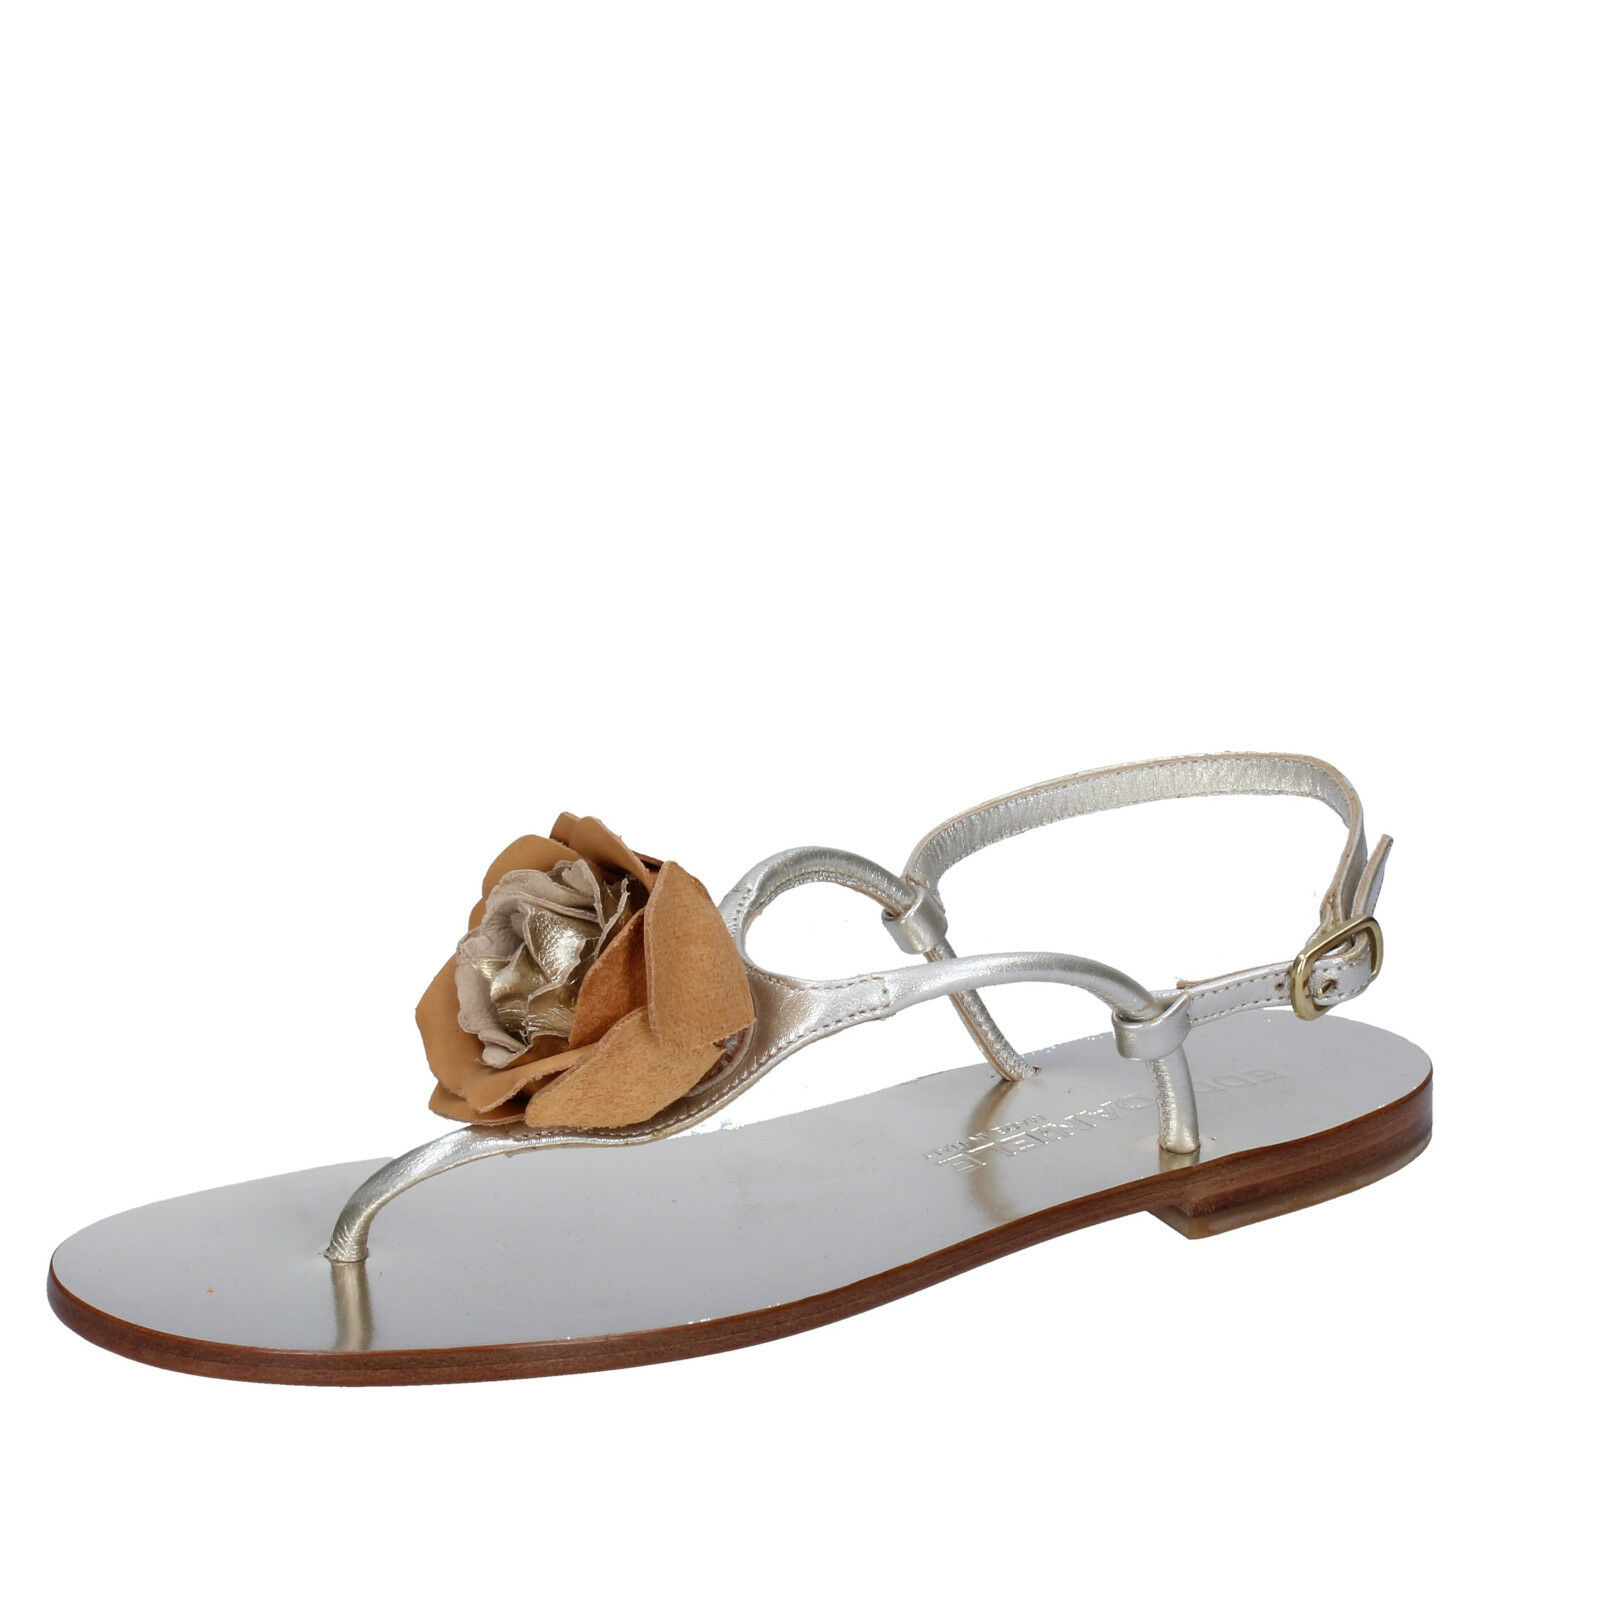 Wohommes chaussures EDDY DANIELE 7 (EU 37) sandals argent marron leather AW392-37